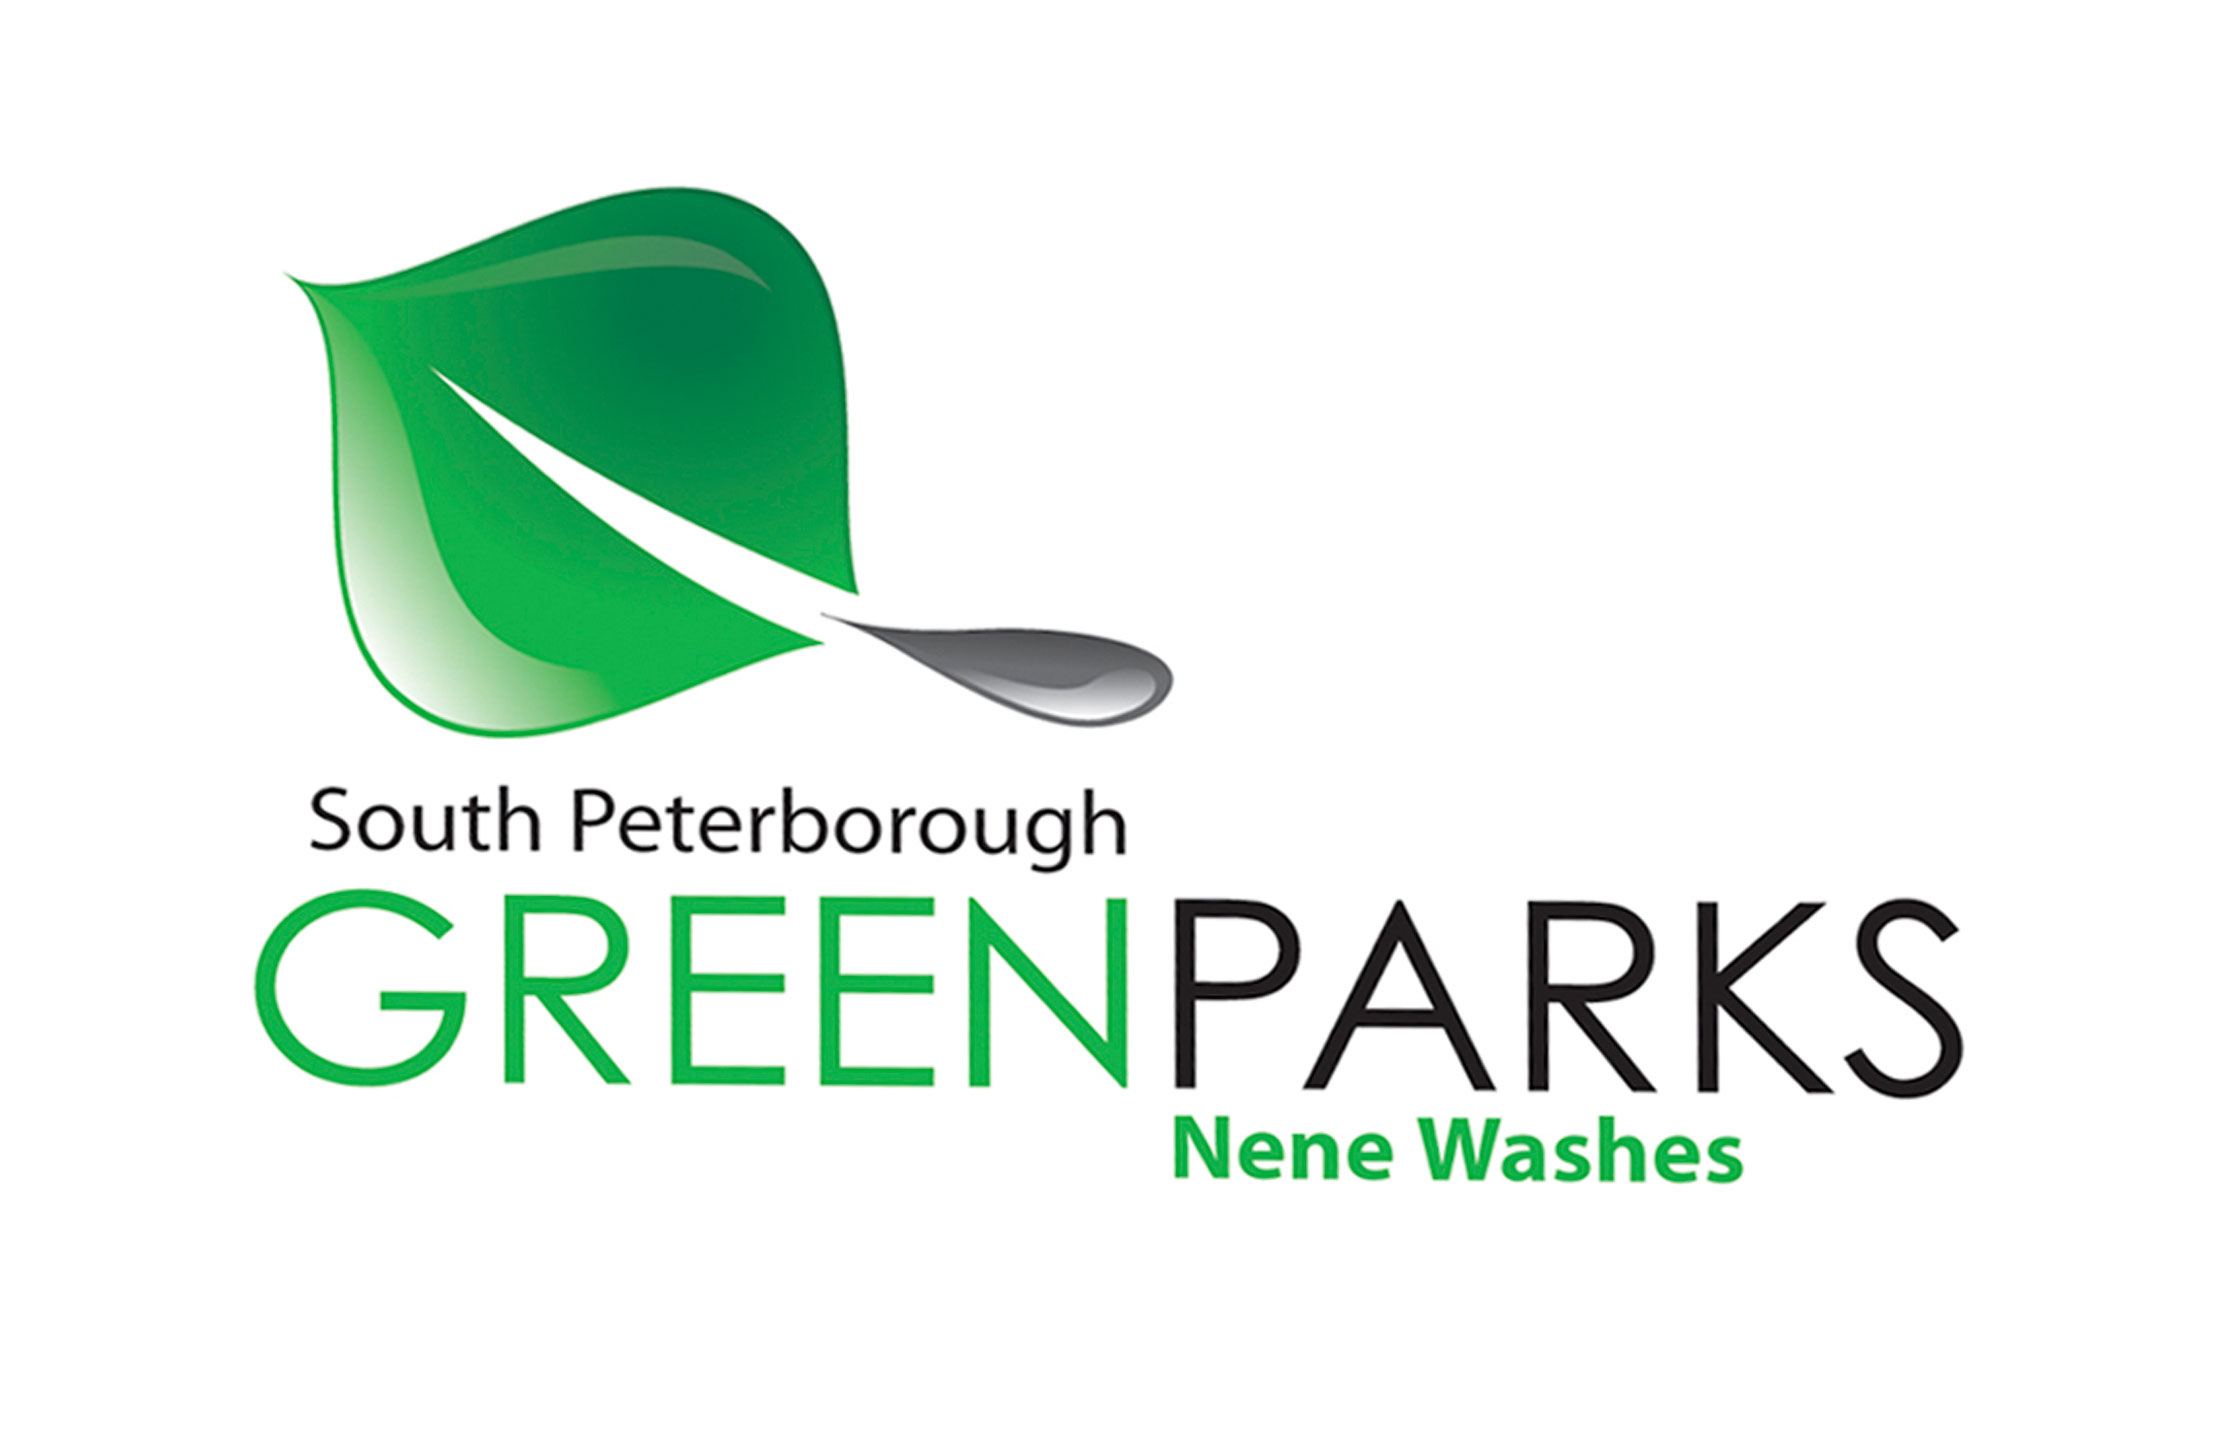 Design of proposed South Peterborough Green Parks logo